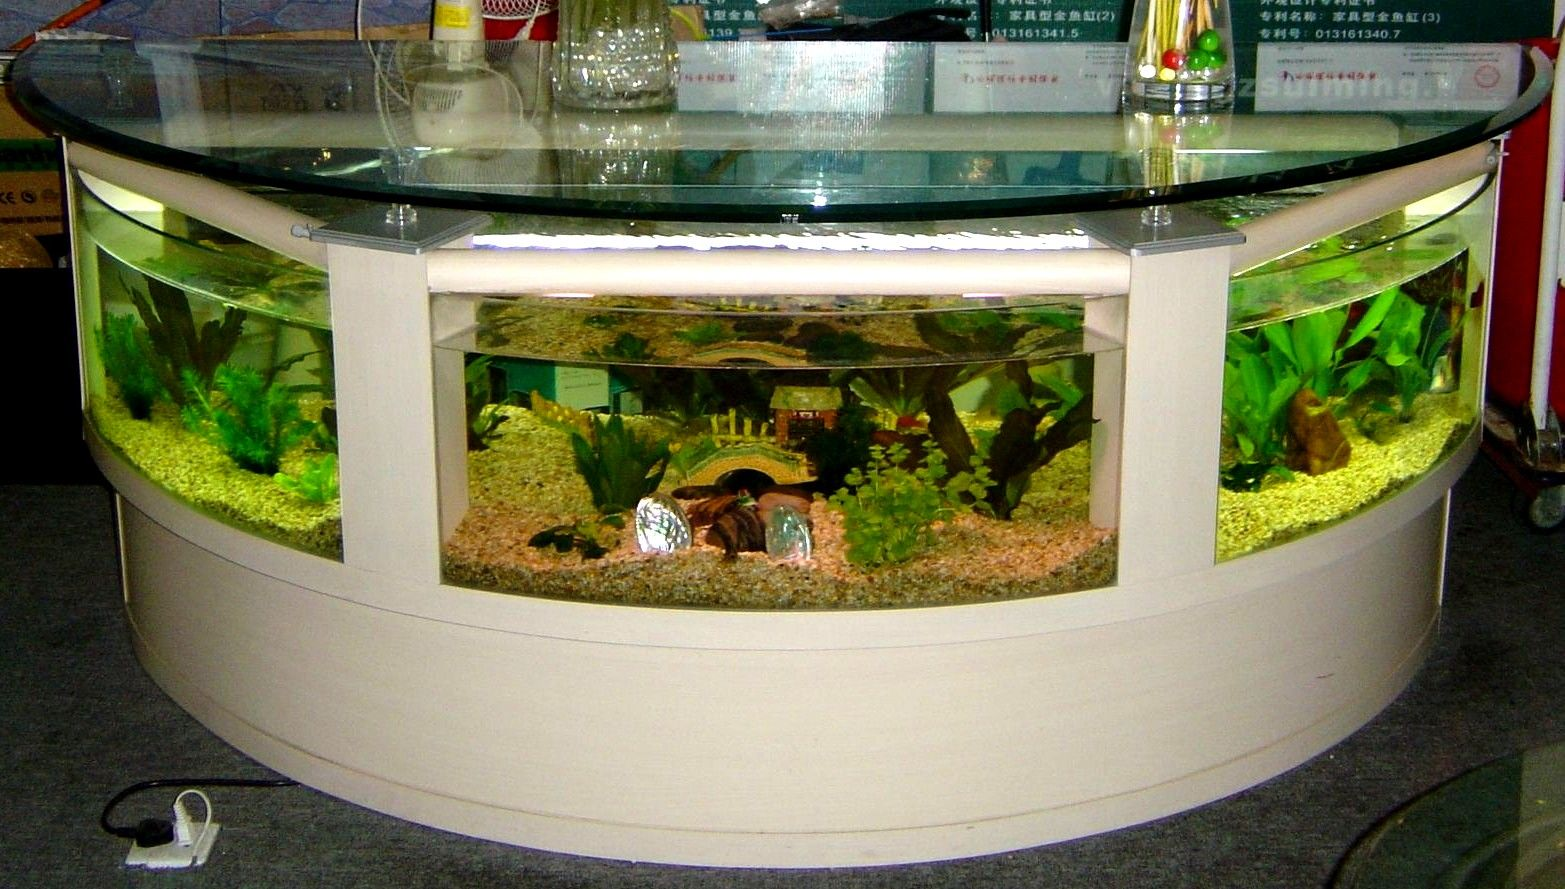 Living room pictures · the aquarium is named table aquariums using the concept desainn more freely to be enjoyed